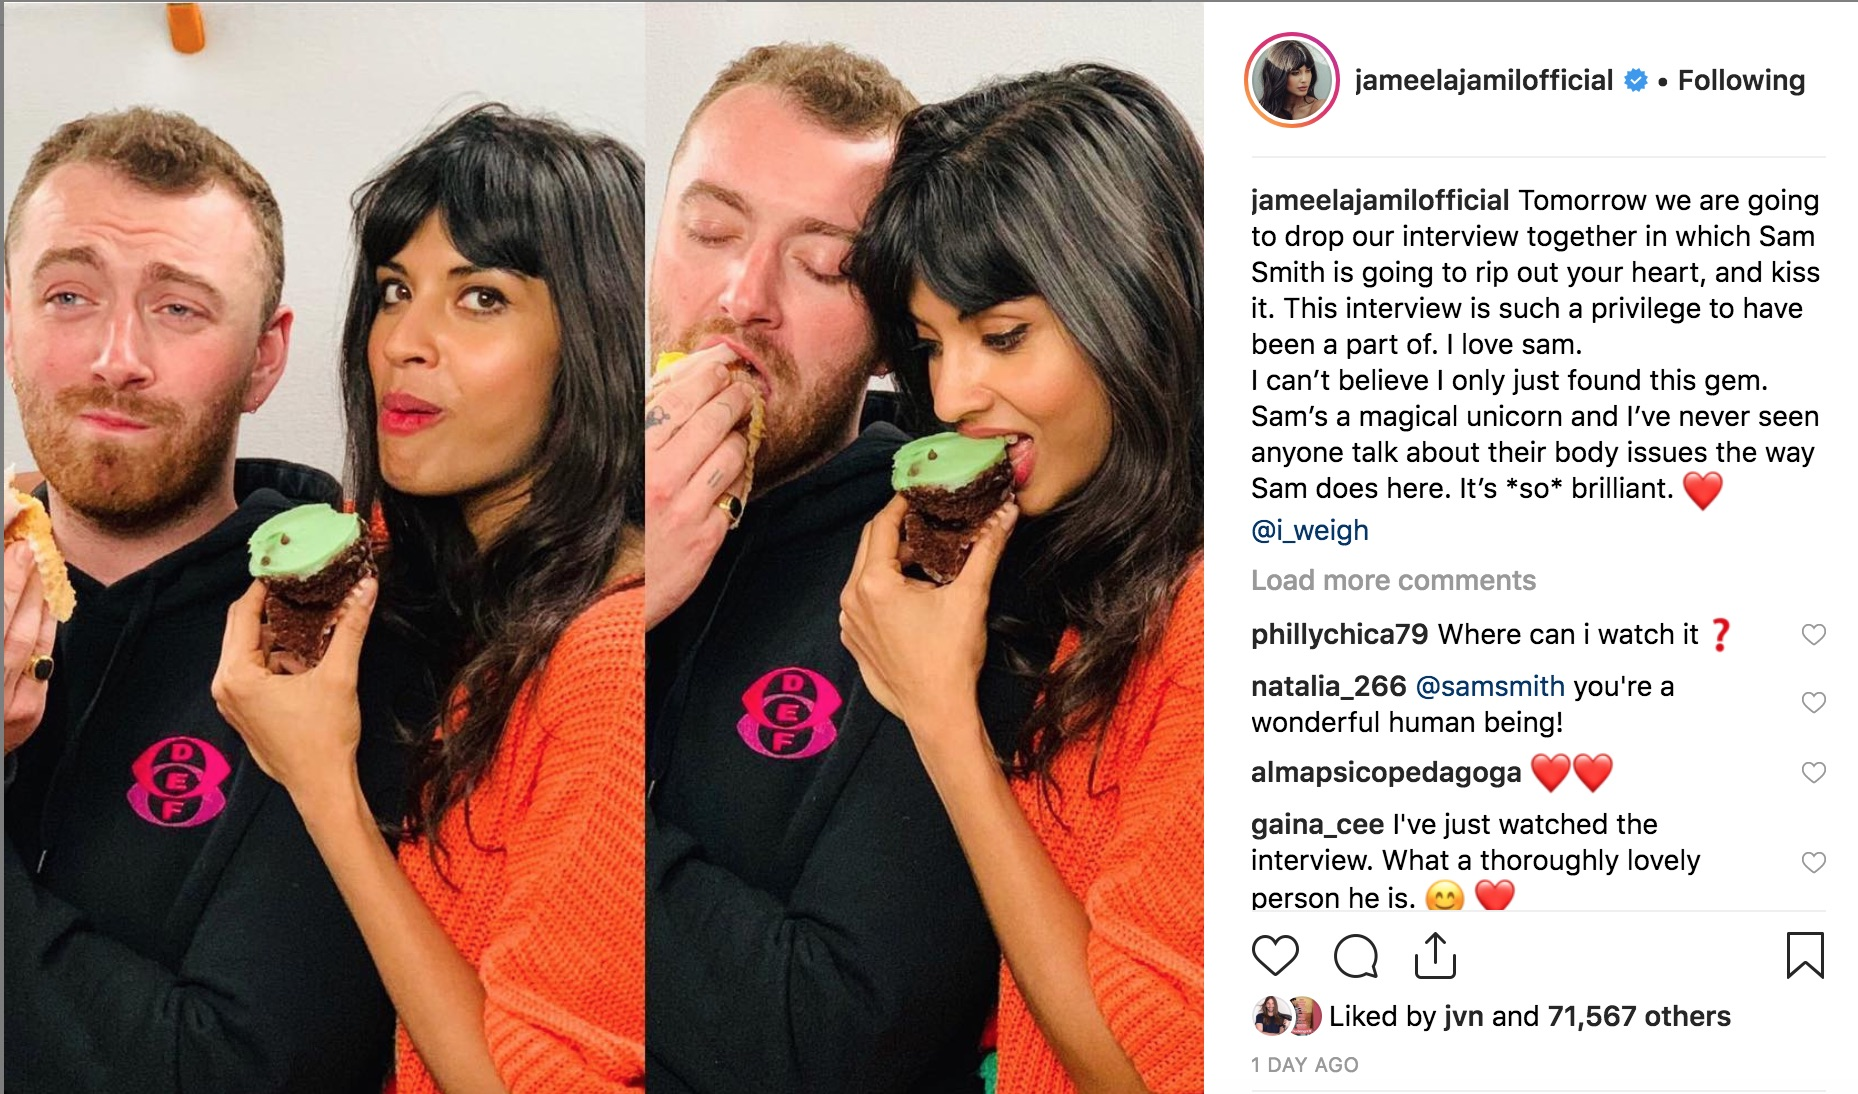 Jameela Jamil discusses her interview with Sam Smith